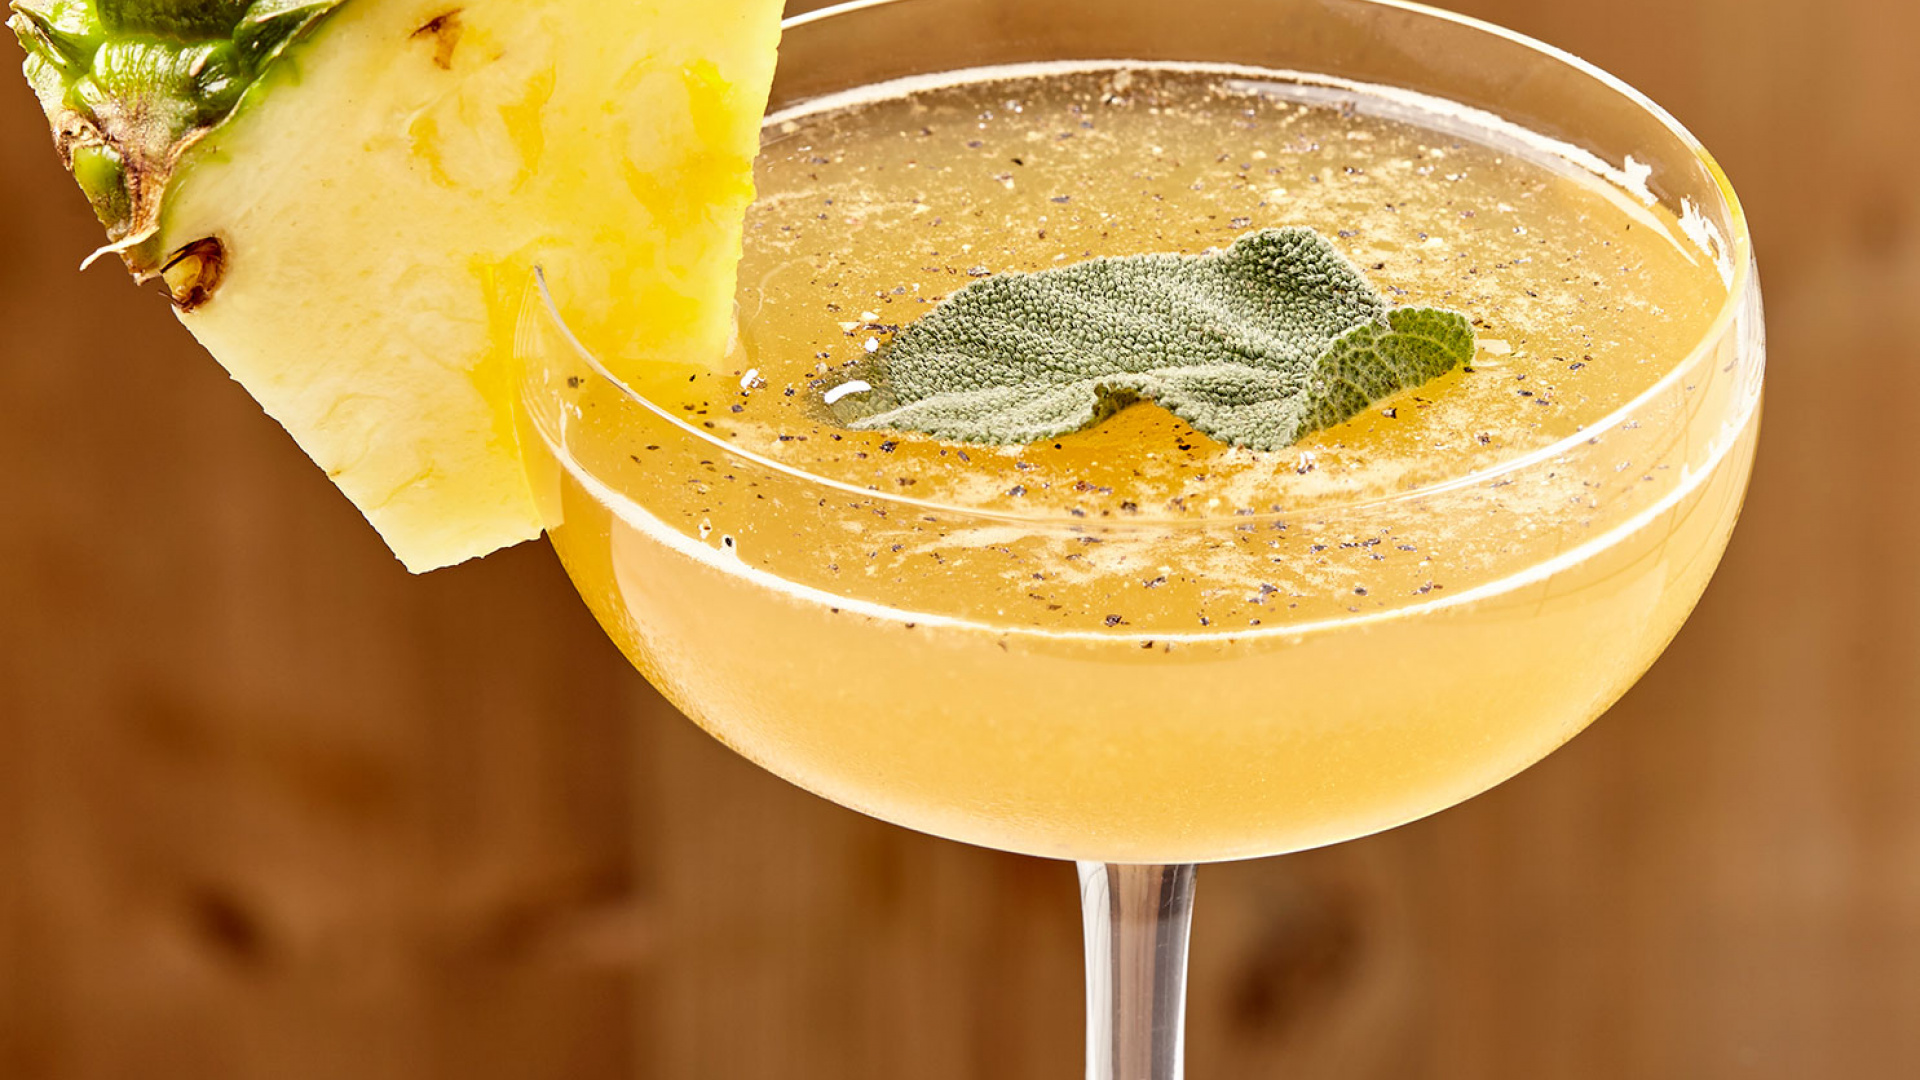 The Natural Philosopher's smoked pineapple and sage cocktail